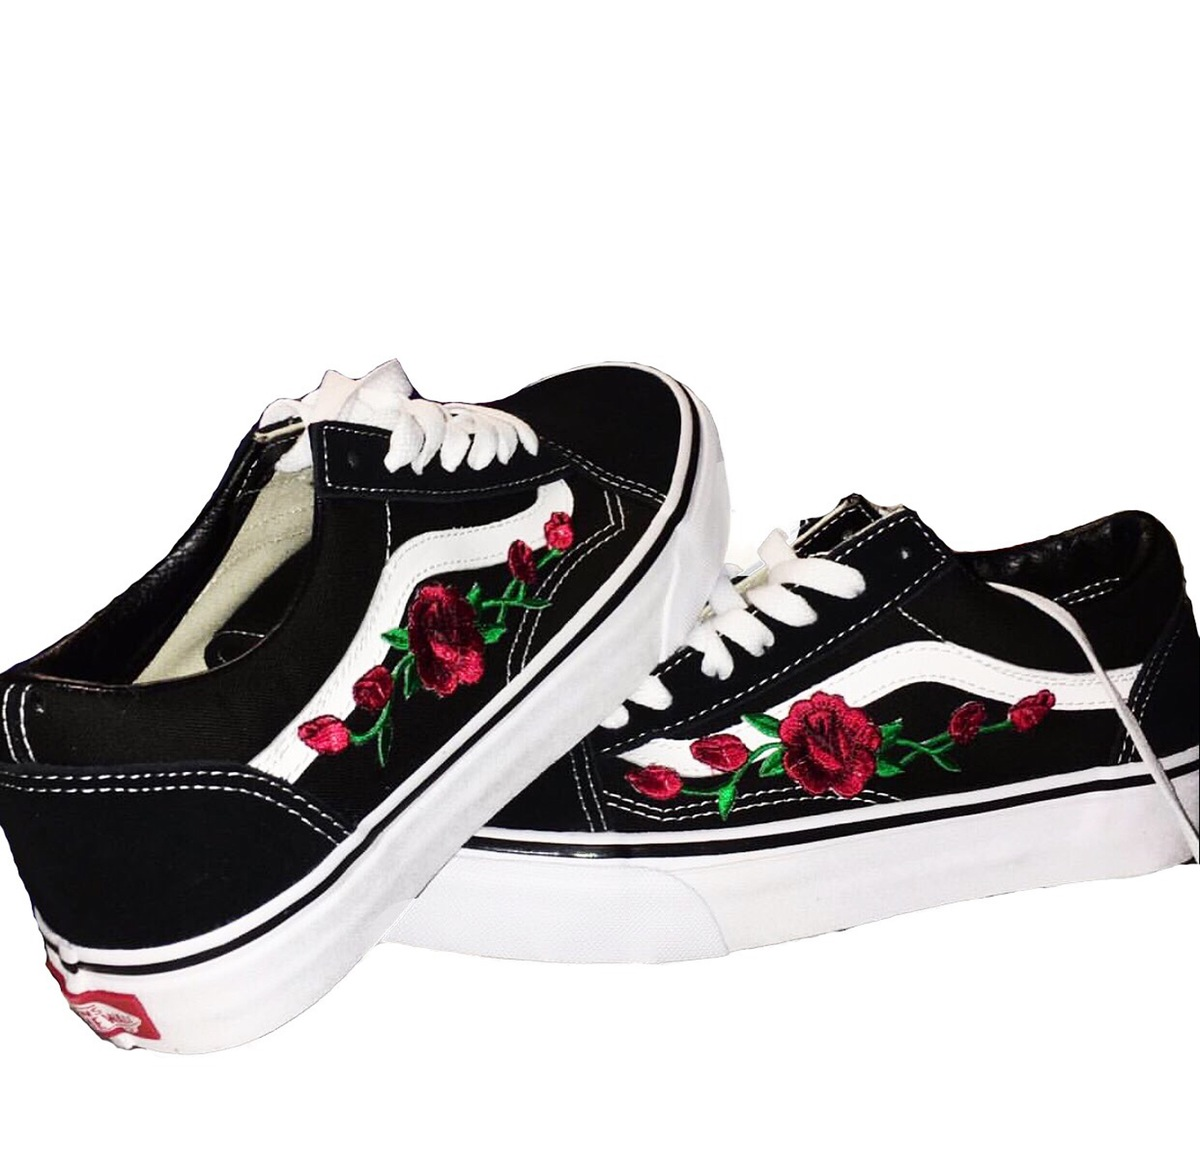 old skool vans roses. Black Bedroom Furniture Sets. Home Design Ideas